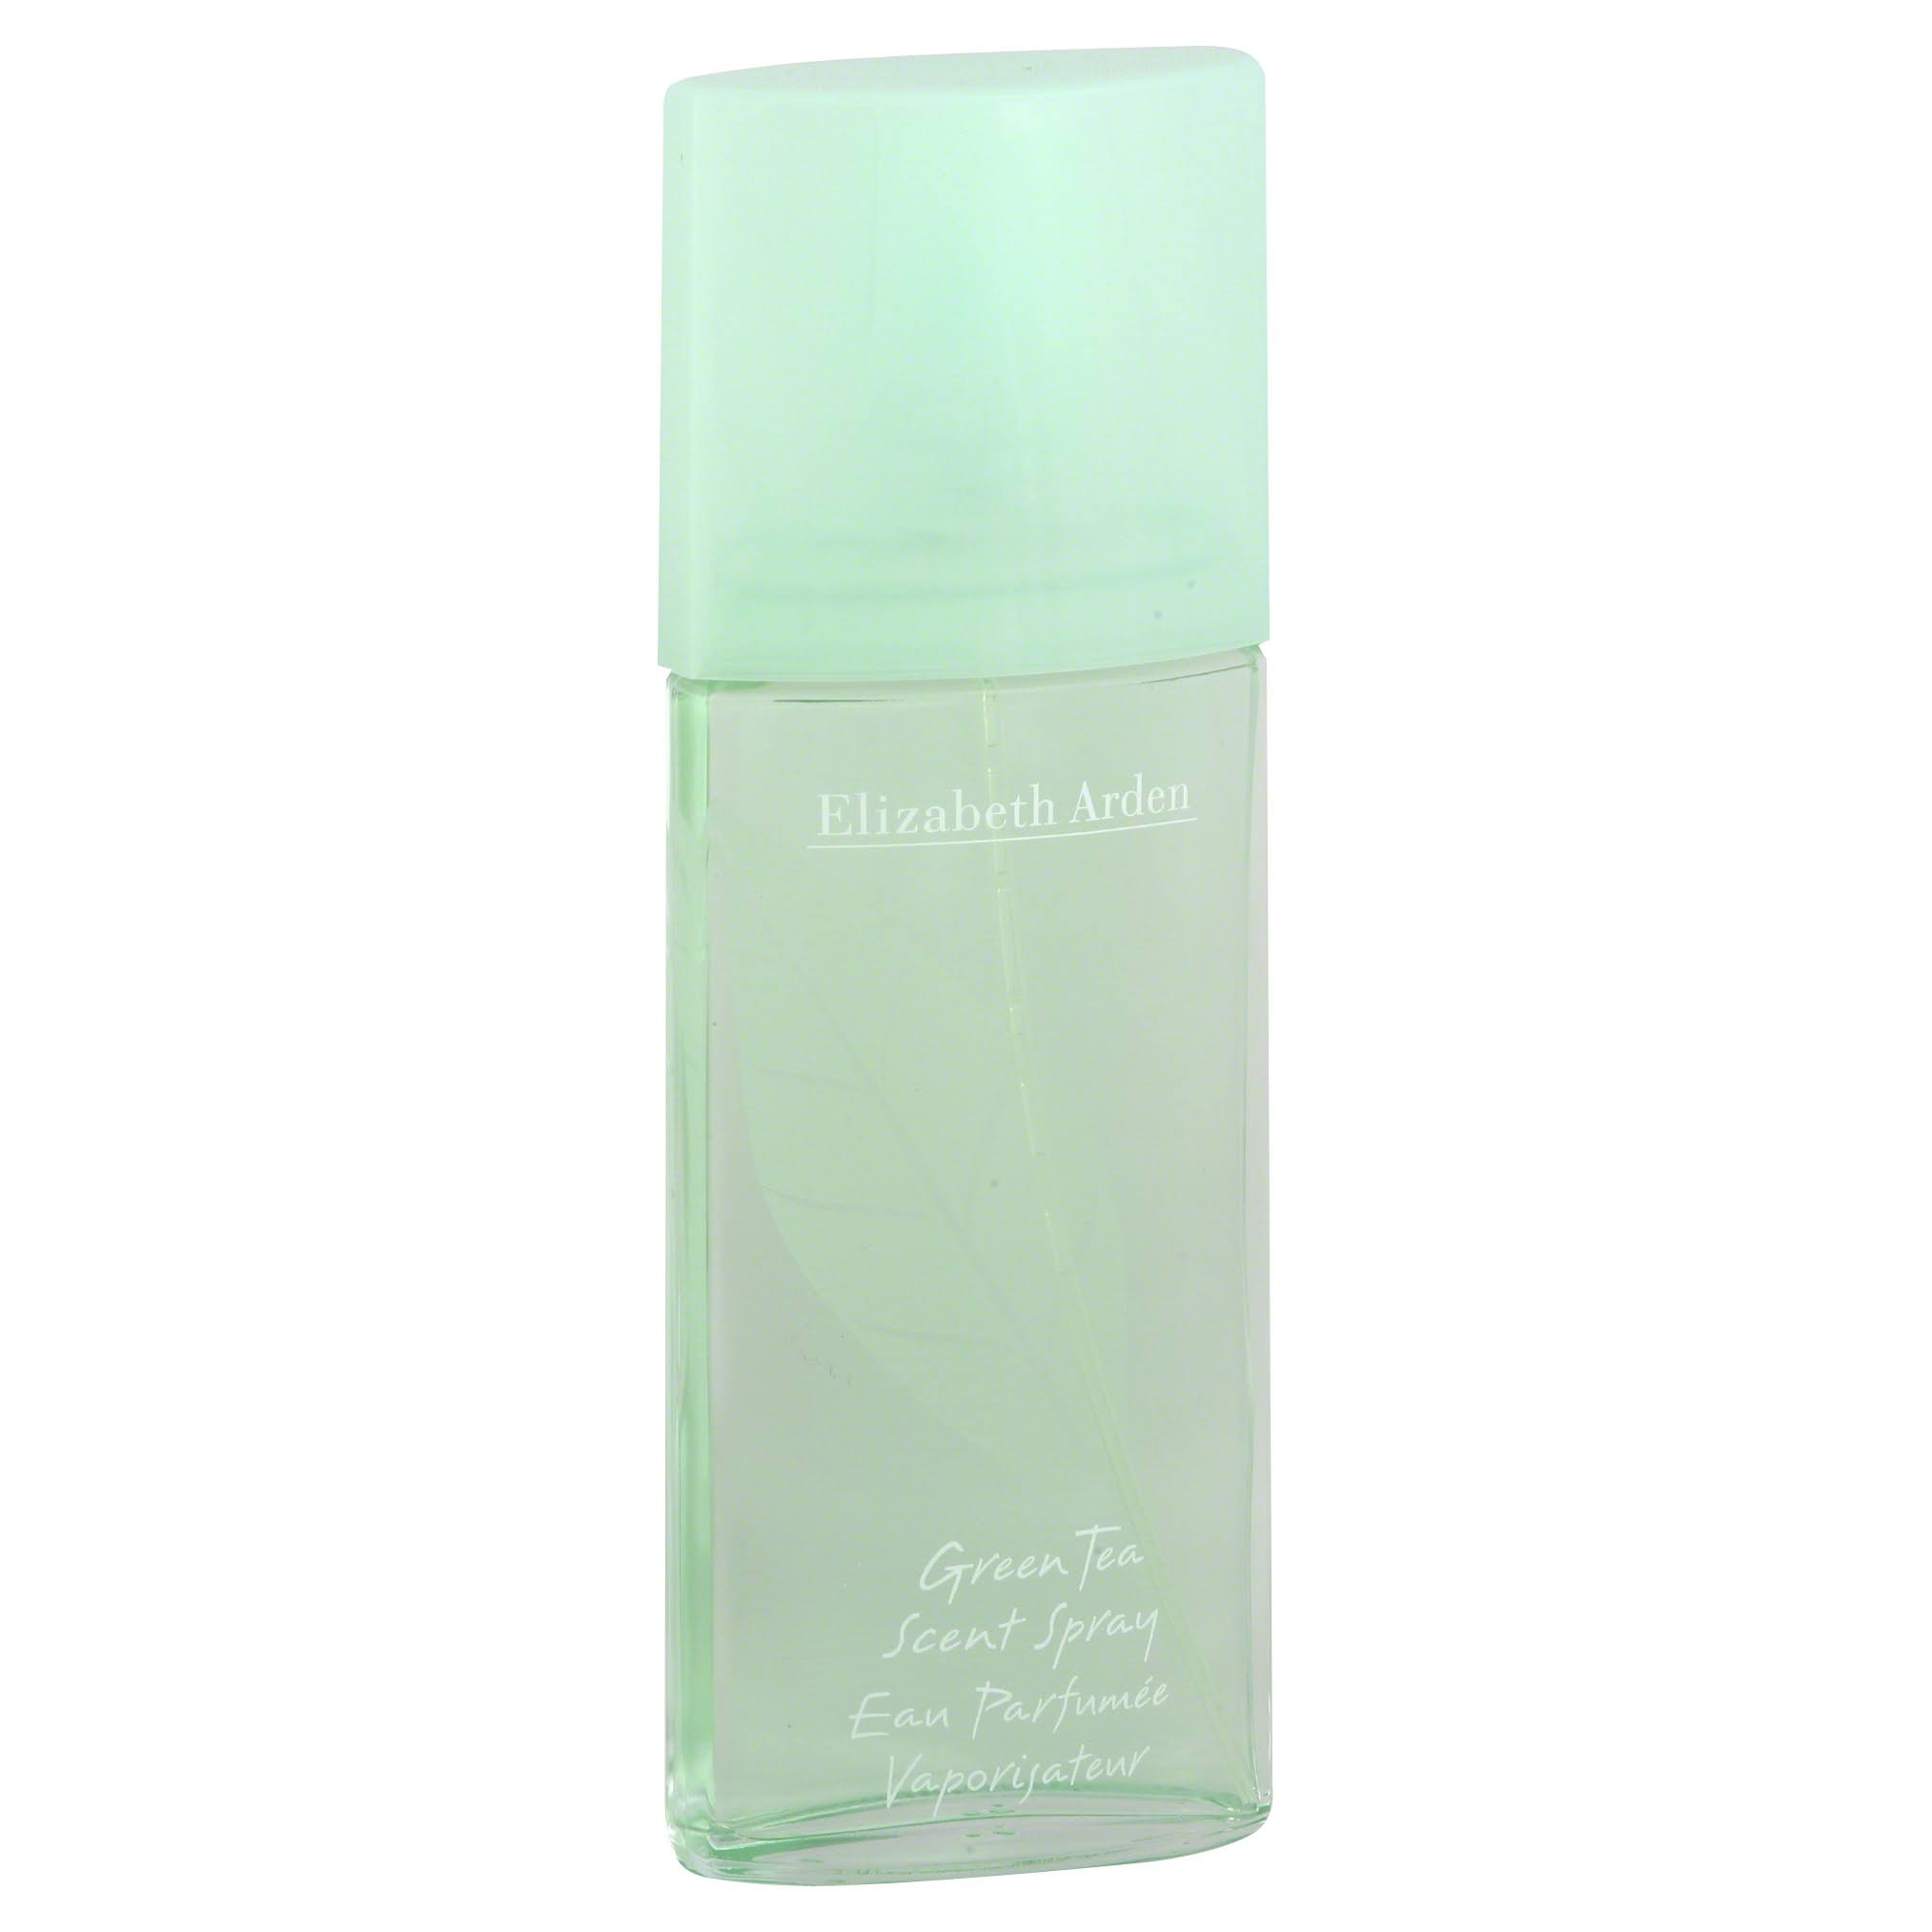 Elizabeth Arden Women's Green Tea Scent Spray - 100ml